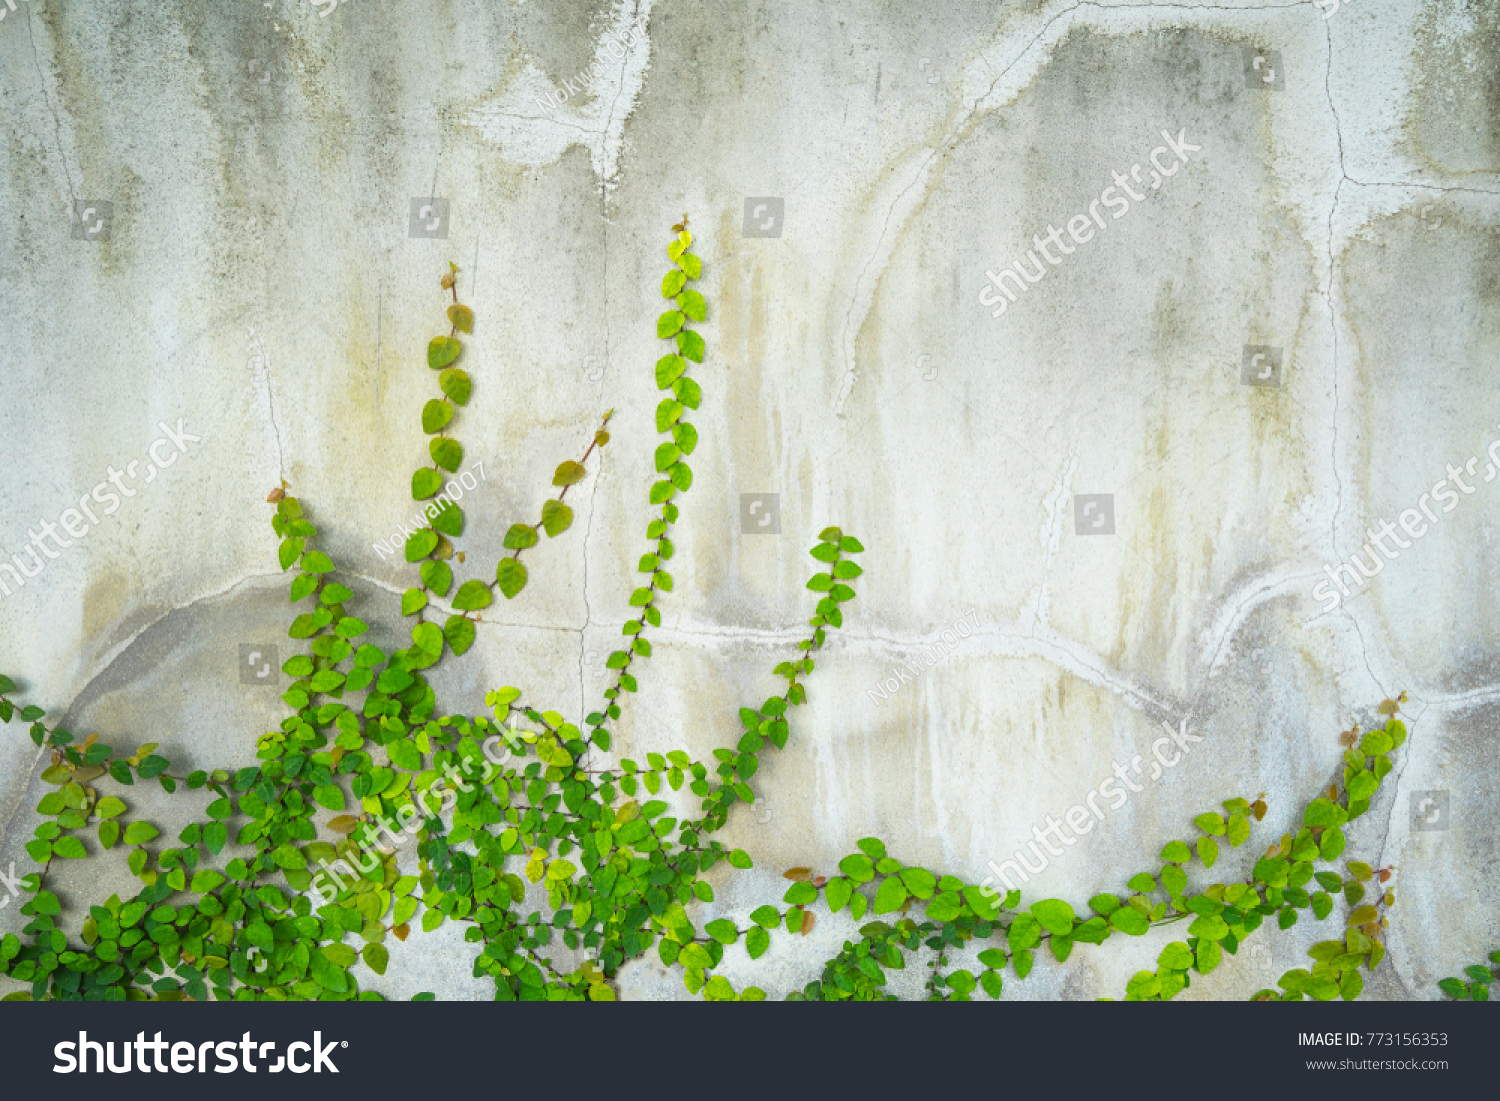 Green Vine Climbing Creeping On Raw Stock Photo 773156353 - Shutterstock